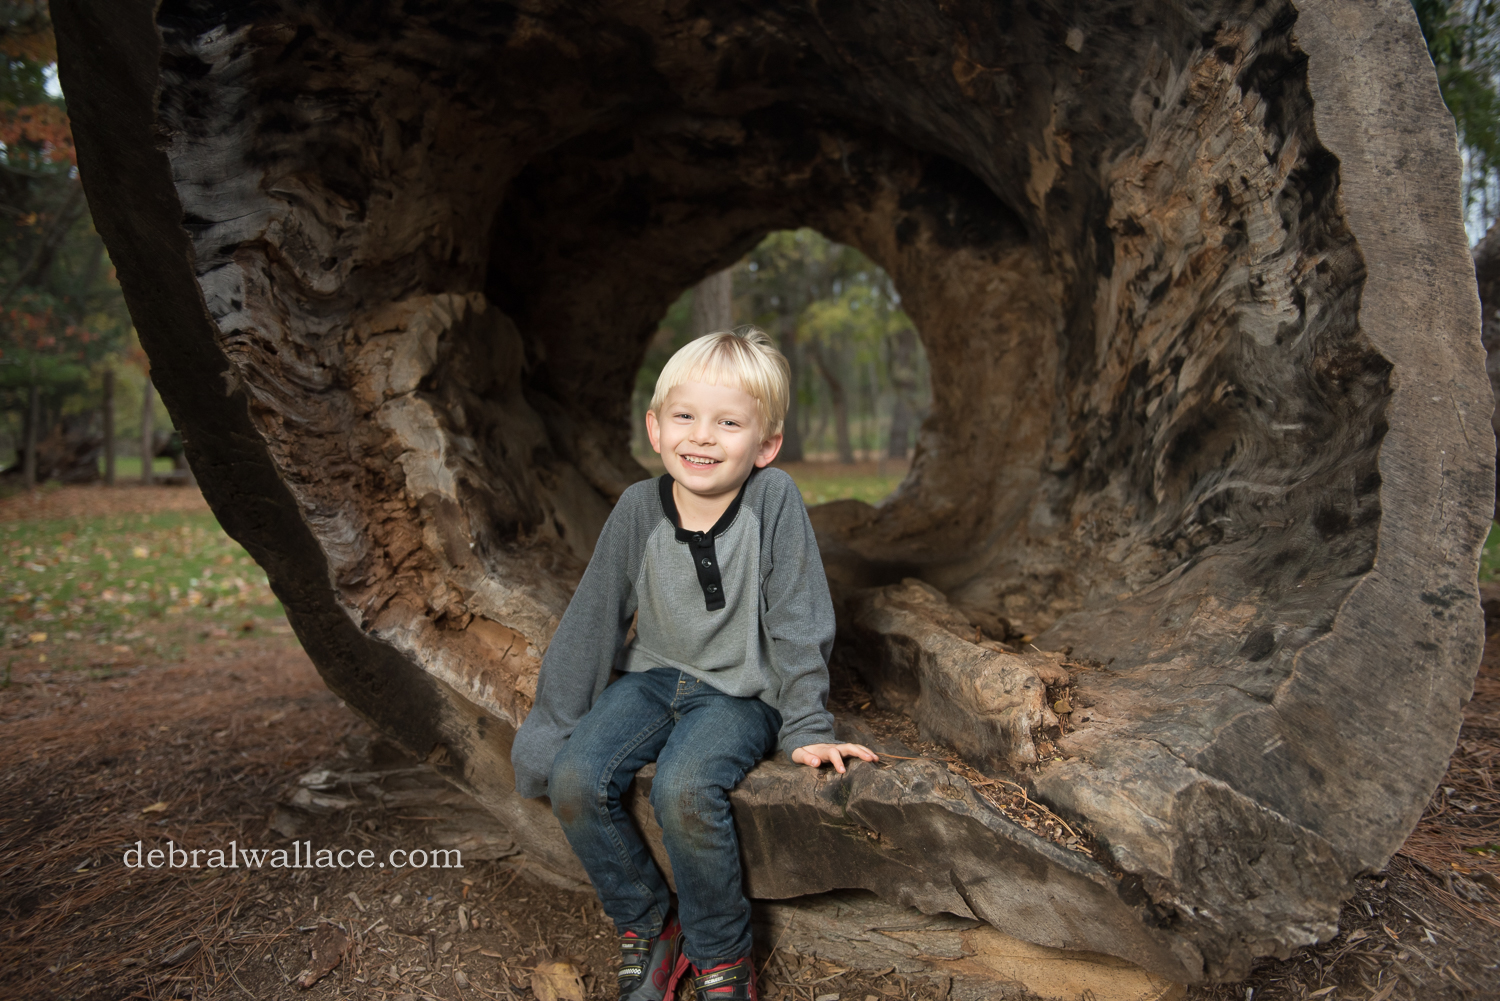 mendon-ponds-family-photography-hollow-log-leaves-brothers-1401